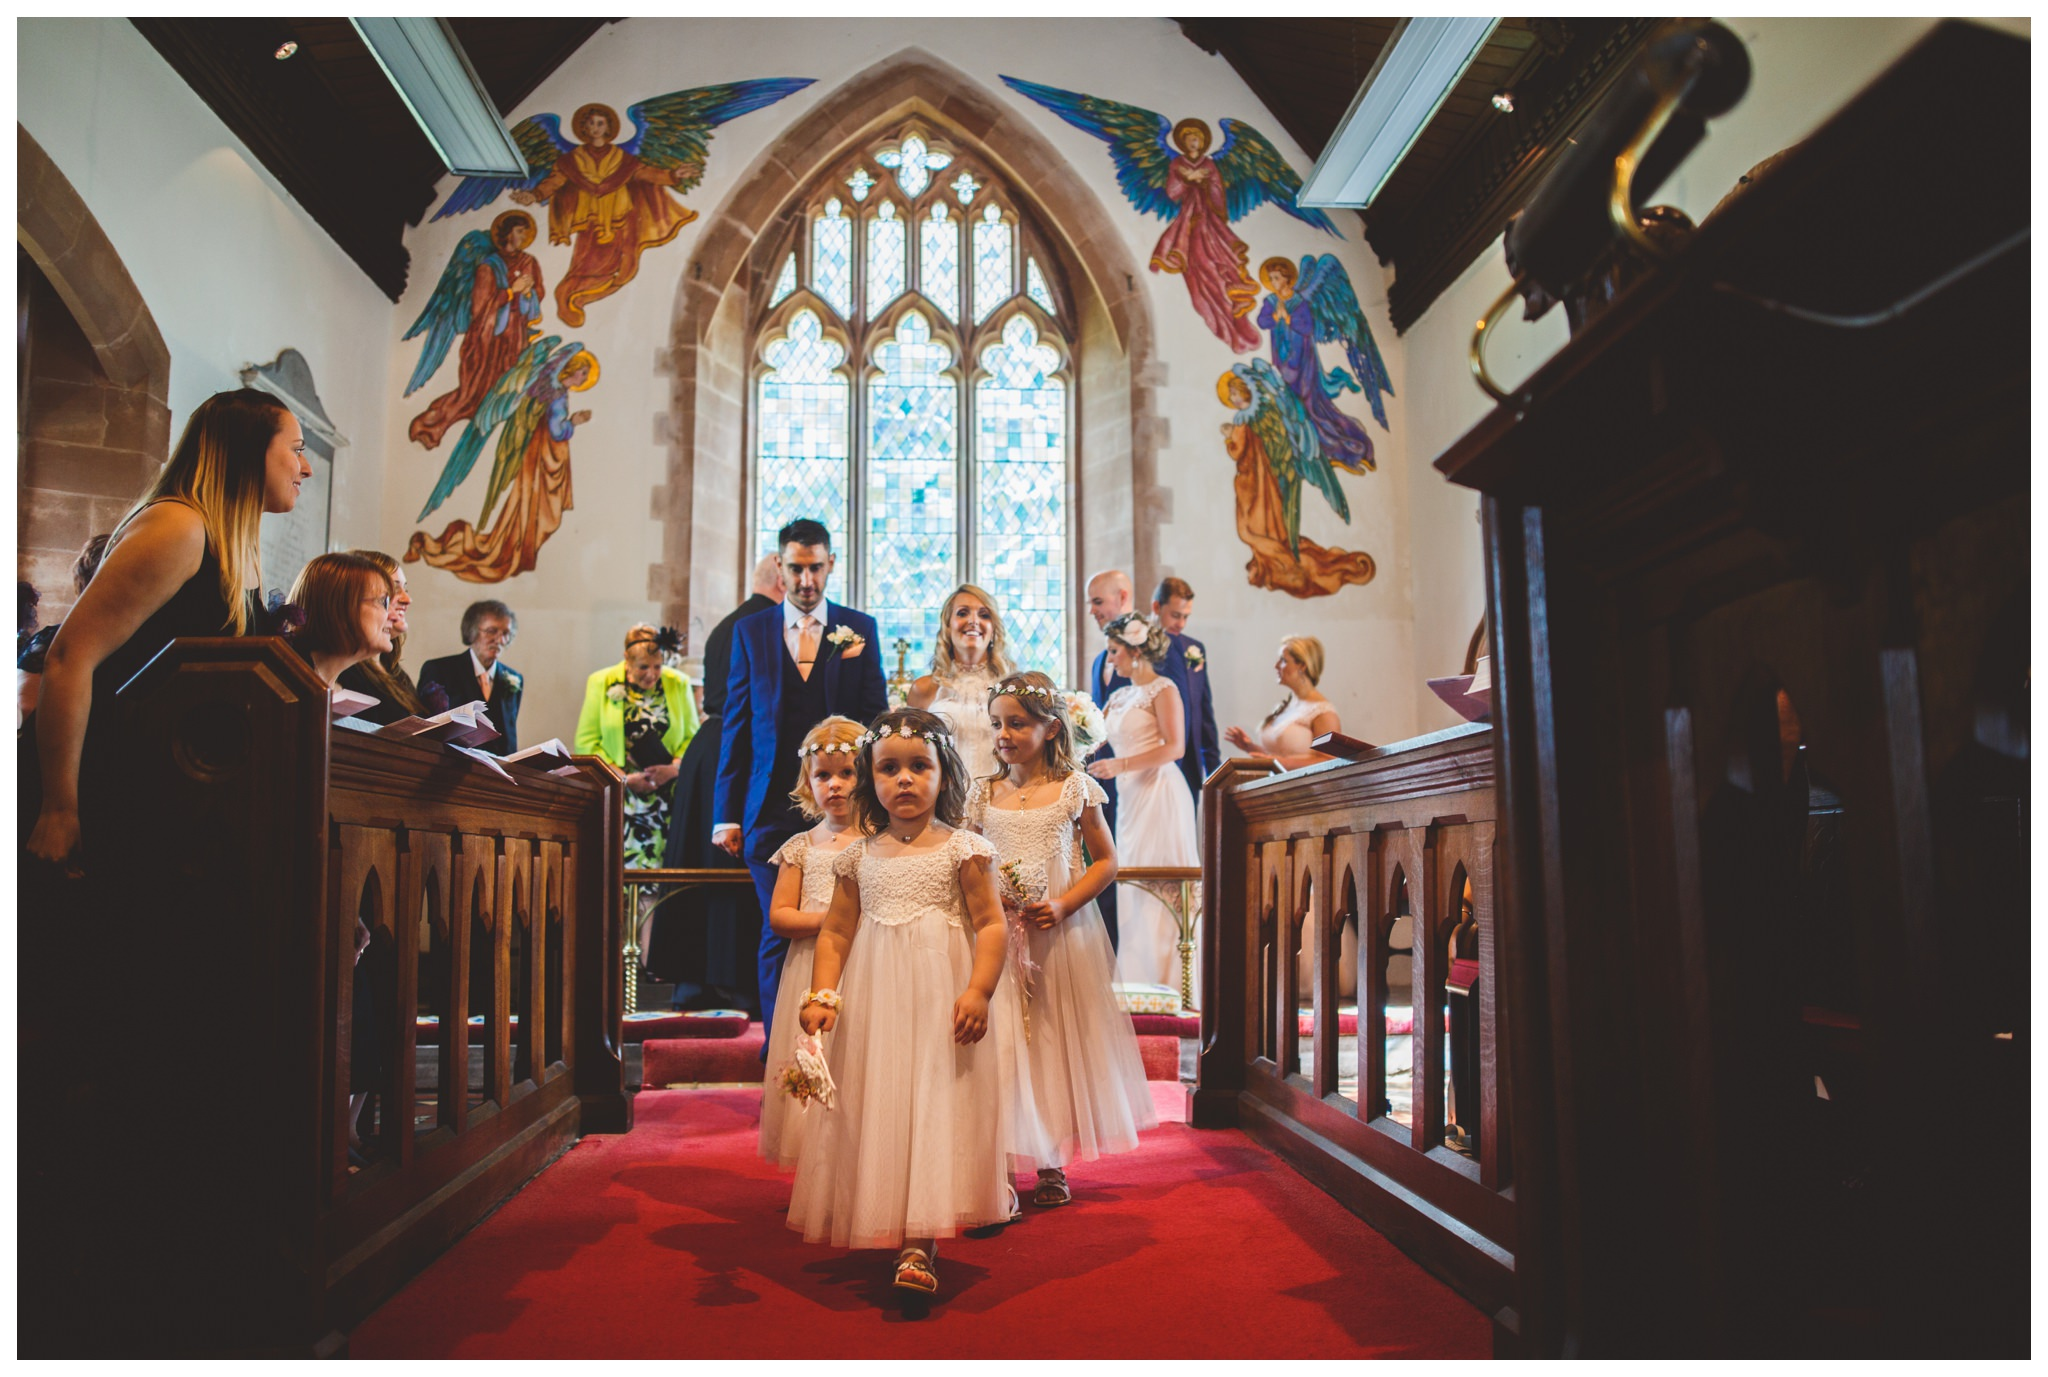 Richard Savage Photography - Wedding - Peterstone Court Brecon - 2016-05-11_0028